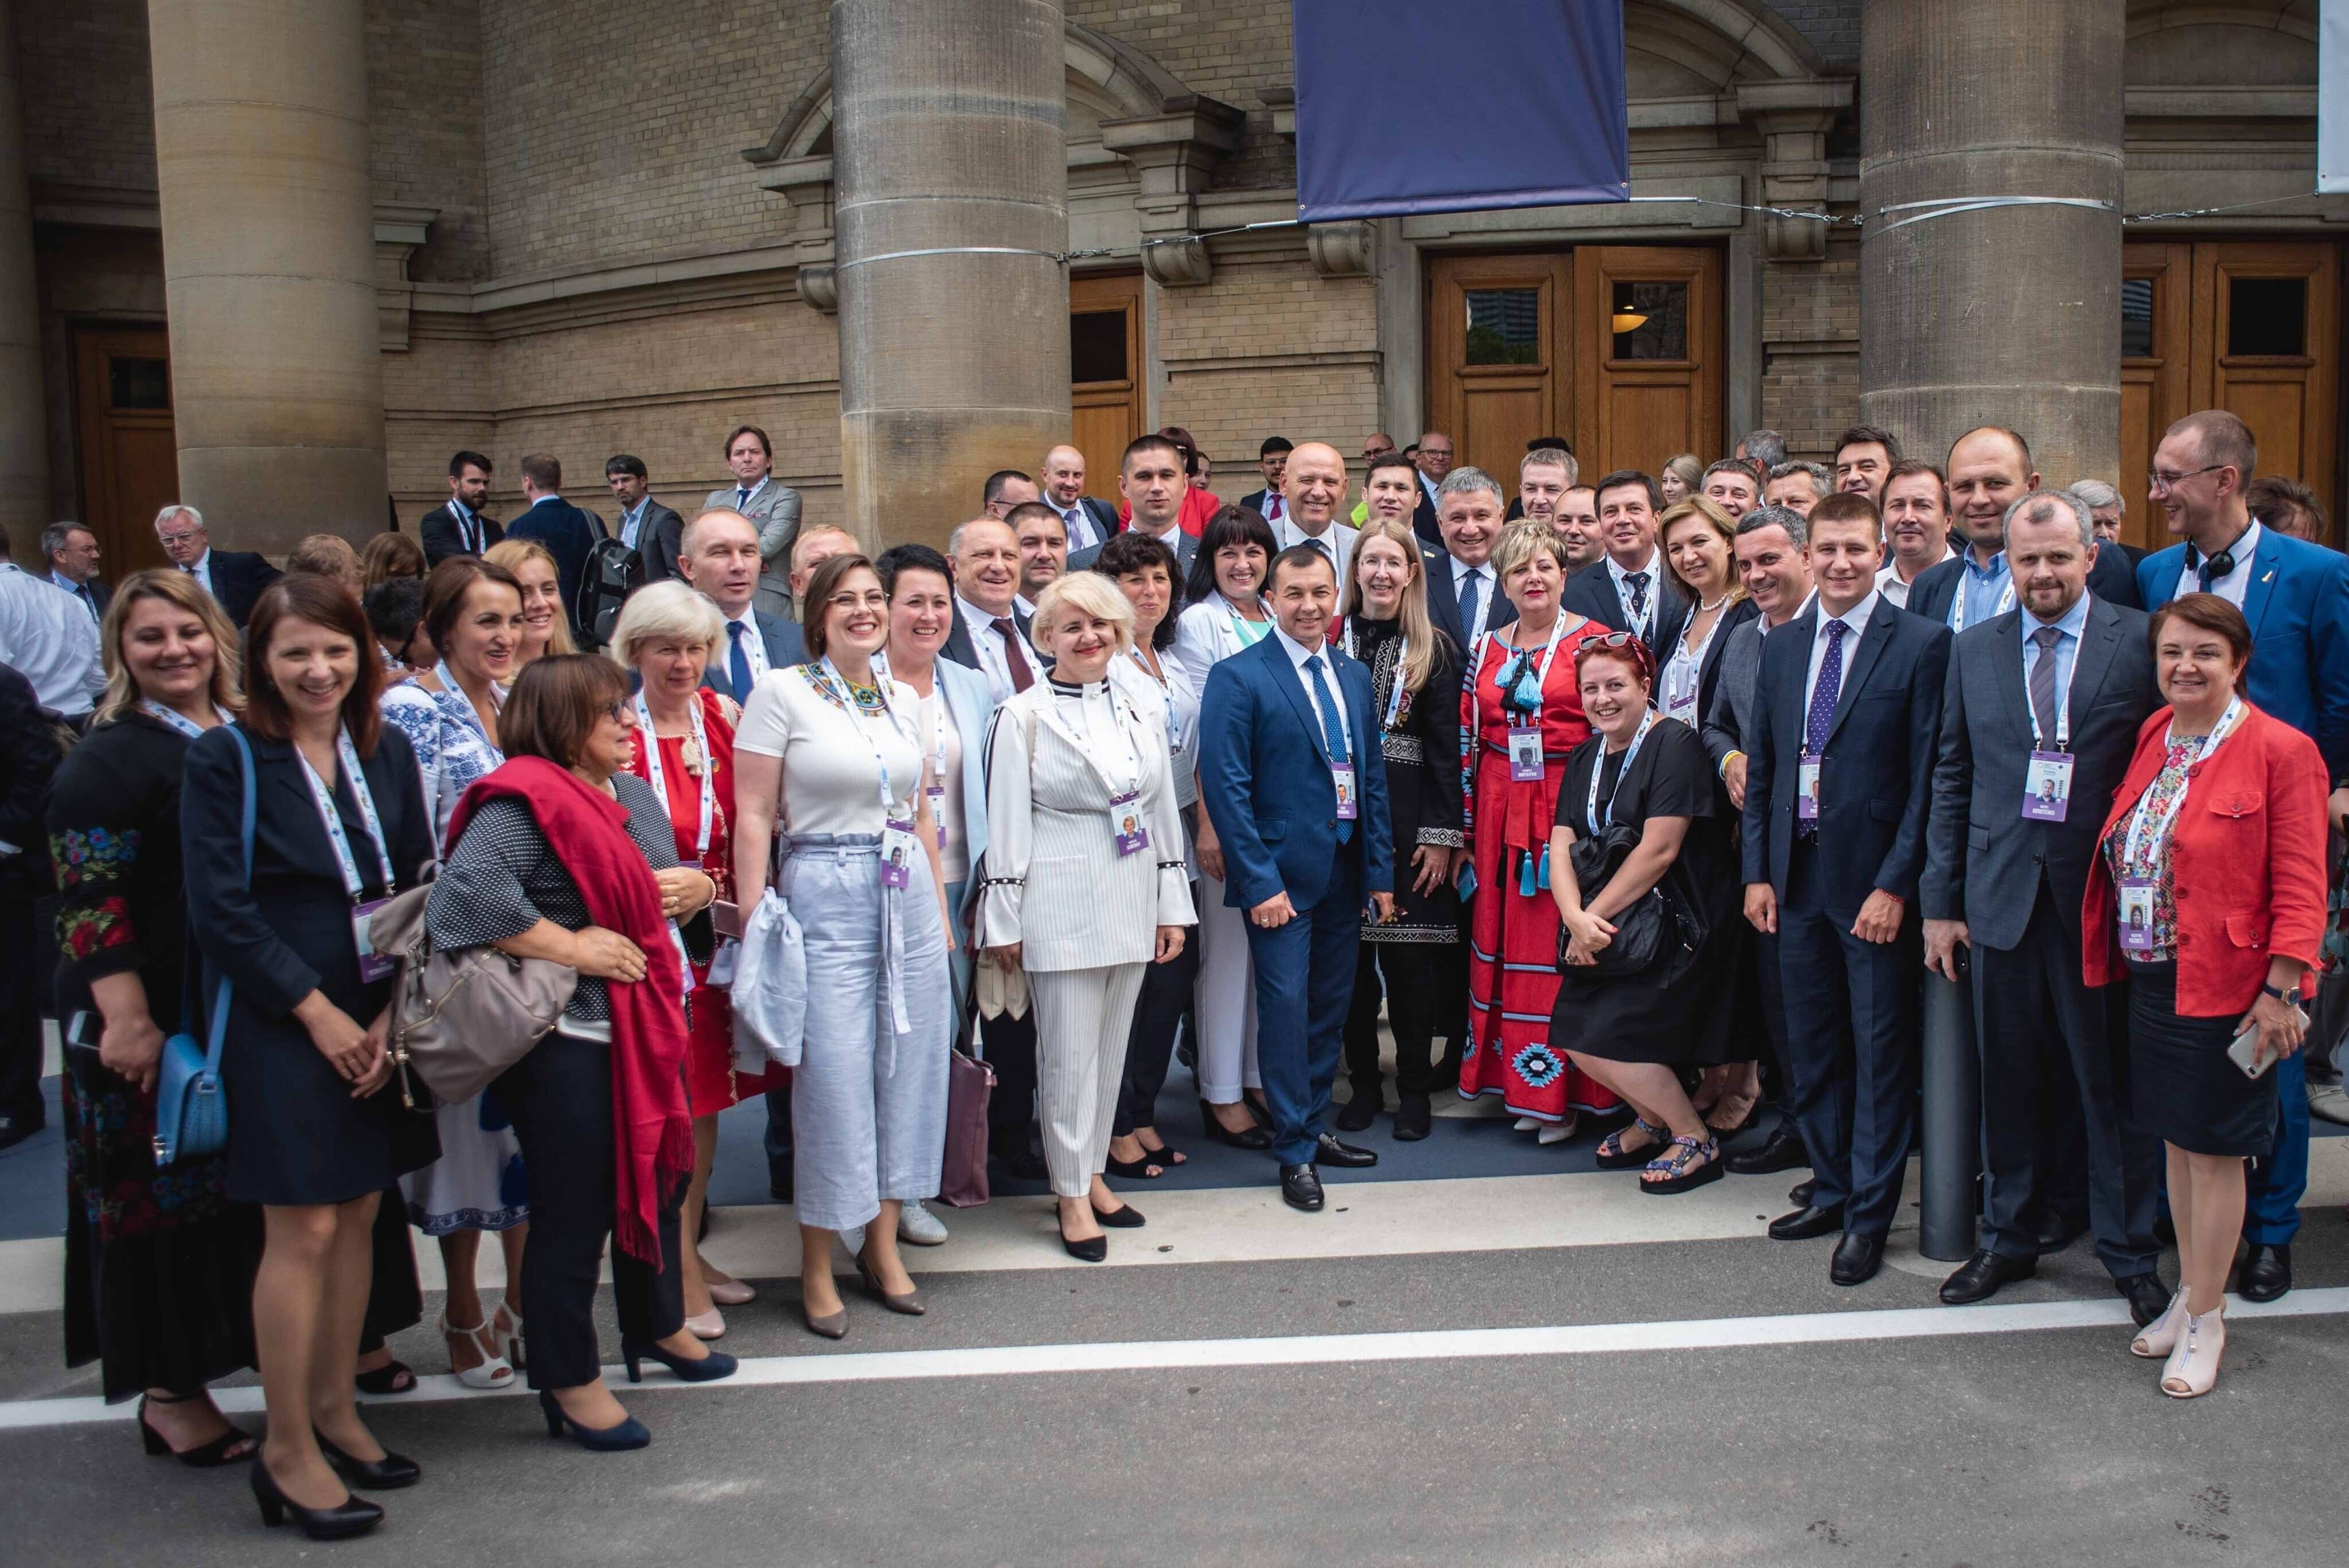 Heads of hromadas, mayors of cities and starostas as ambassadors of the Ukrainian decentralisation reform at the Third Ukraine Reform Conference in Toronto.